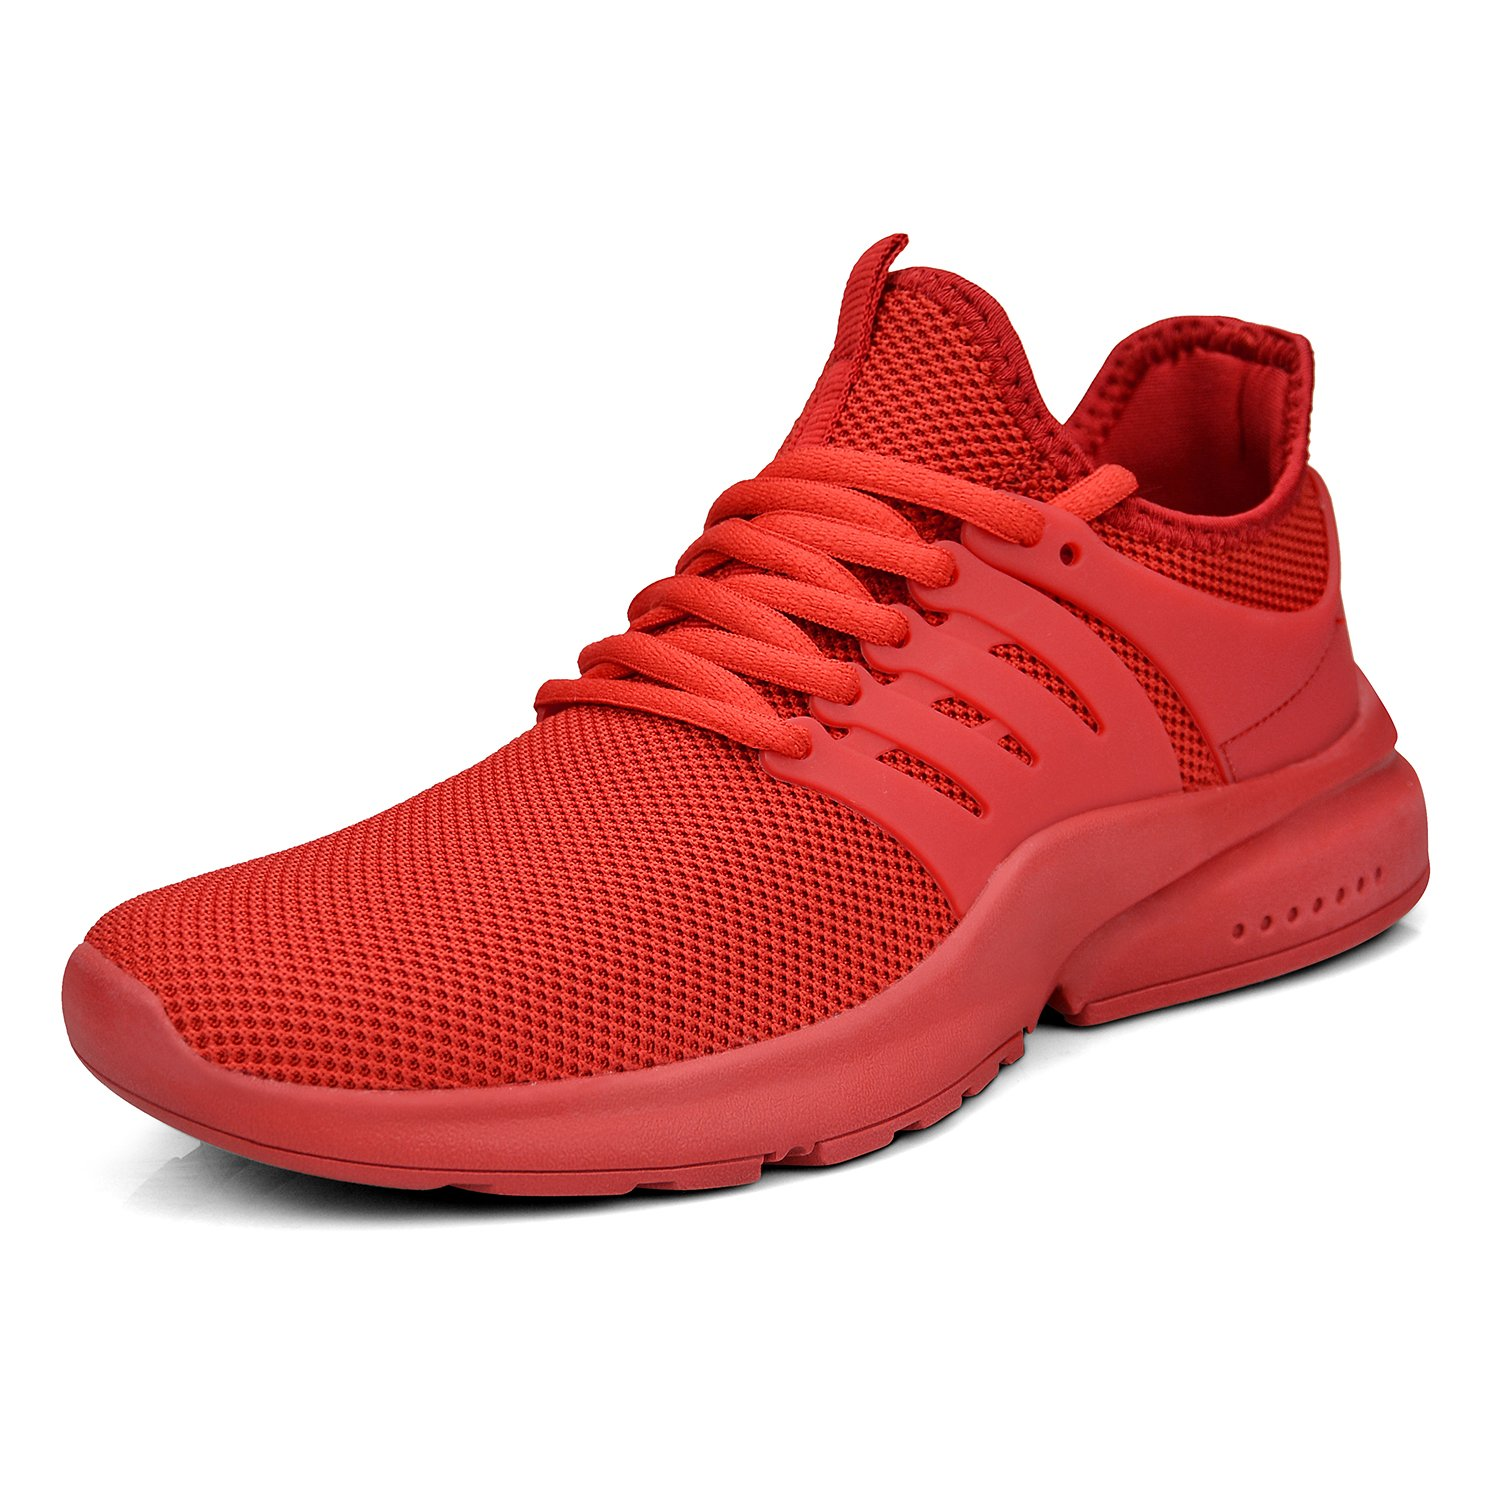 ZOCAVIA Women's Running Shoes Ultra Lightweight Breathable Mesh Sport Sneaker Casual Athletic Shoes B07DN6F5XW 9.5 B(M) US|Red